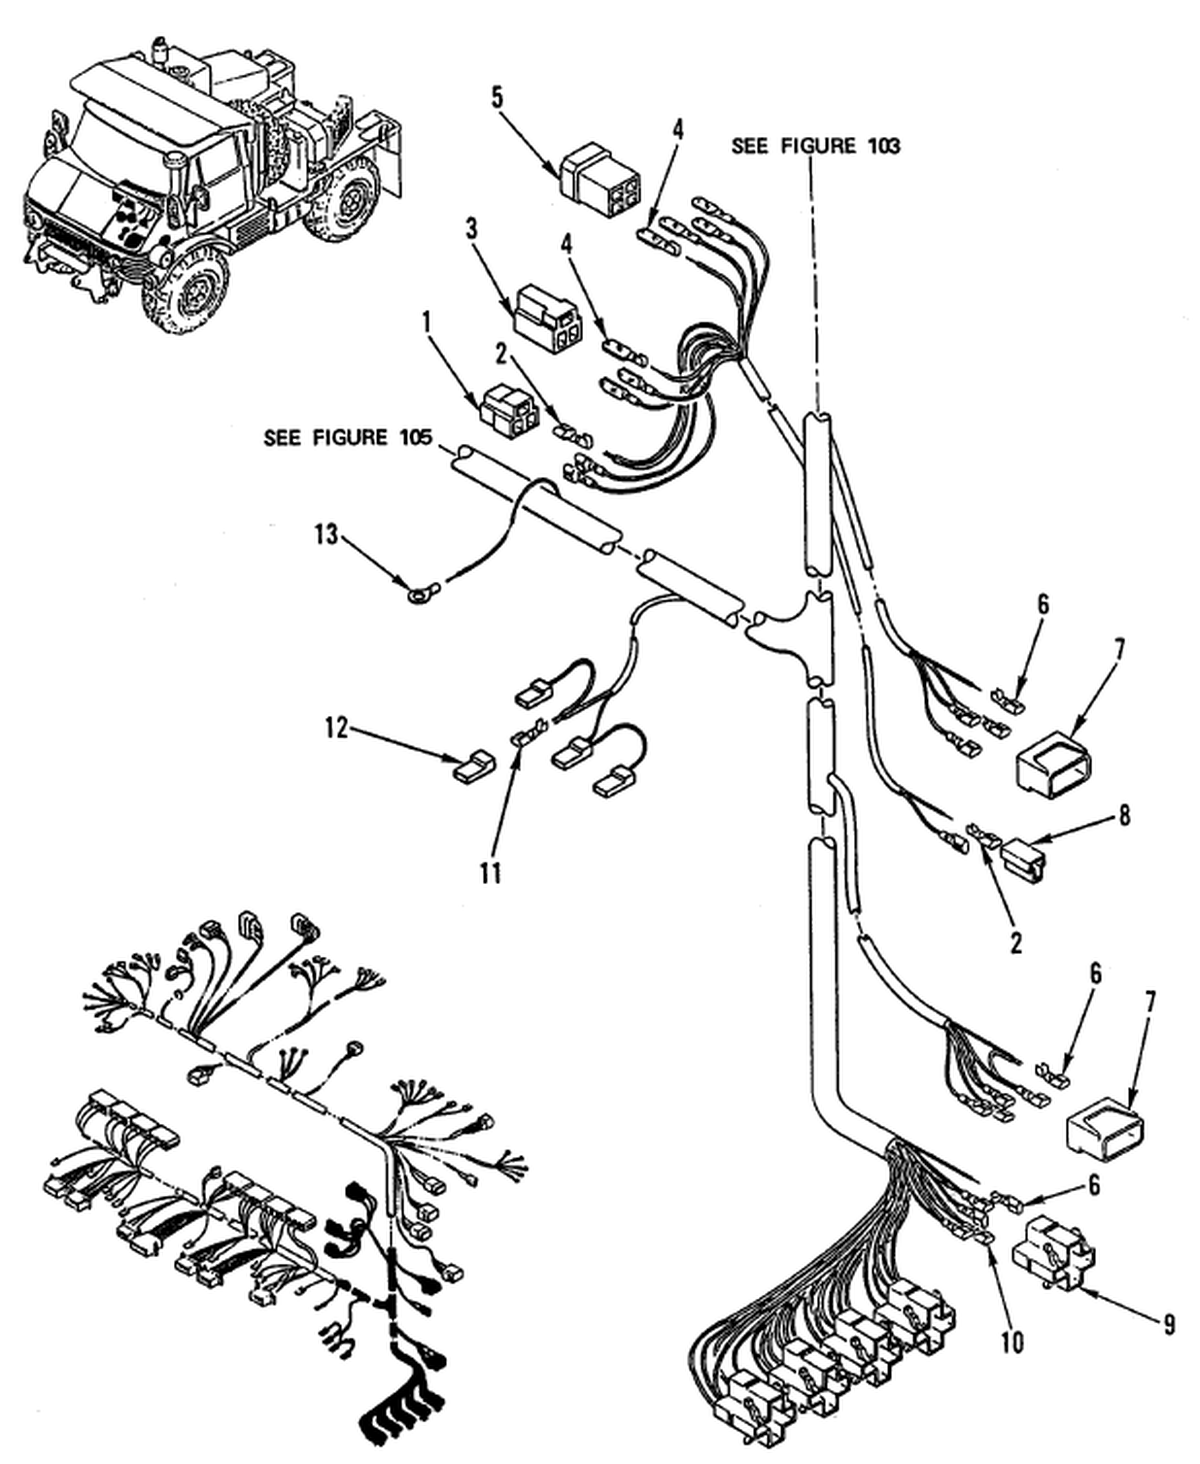 00 2 Figure 104 Hull Or Chassis Wiring Harness Main Wiring Harness Figure 3 Of 4